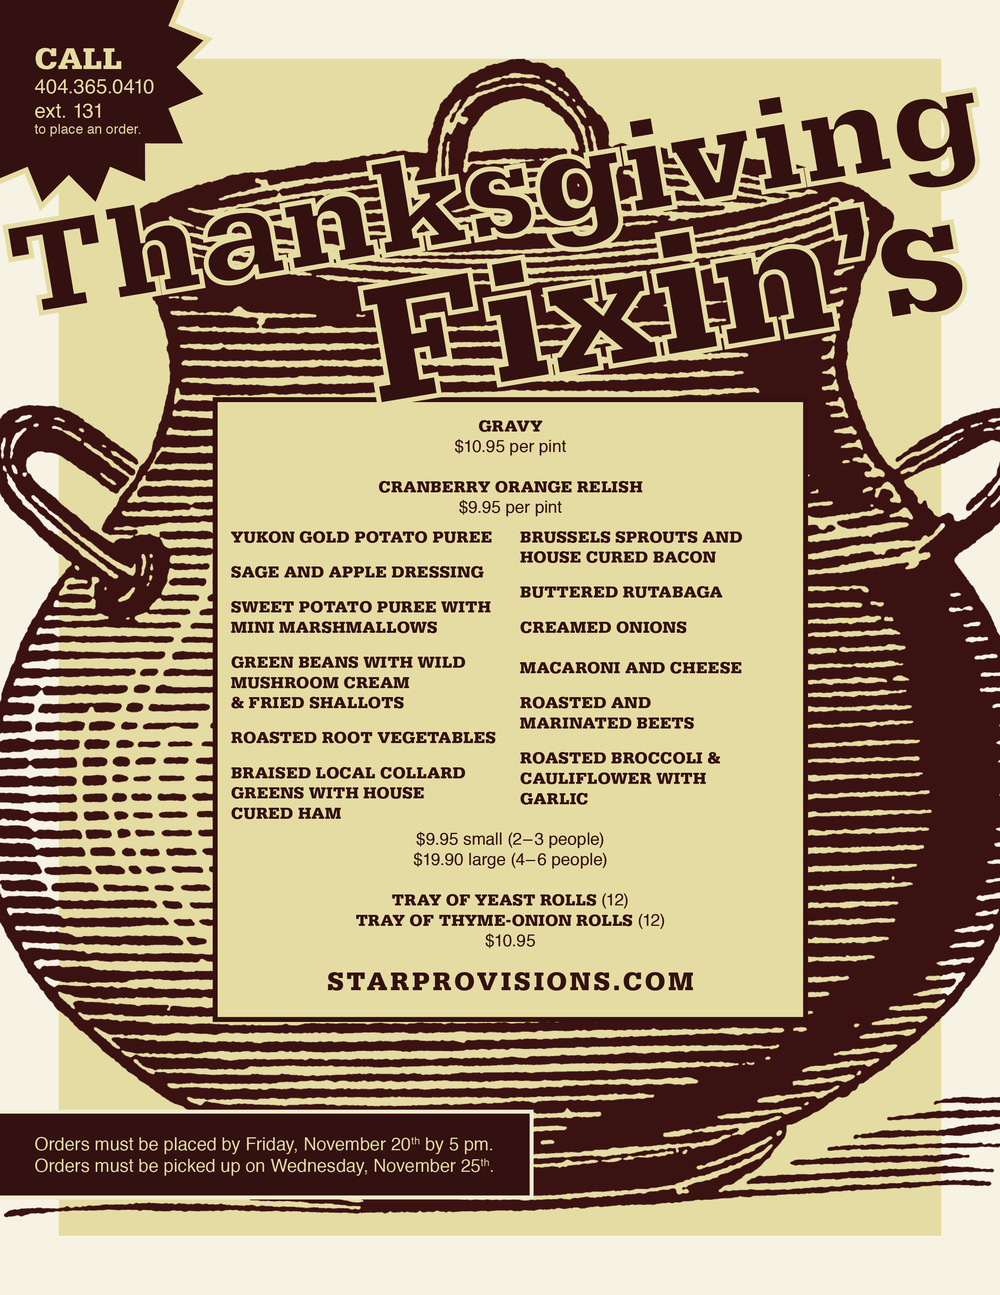 1015-sp-thanksgivingfixins